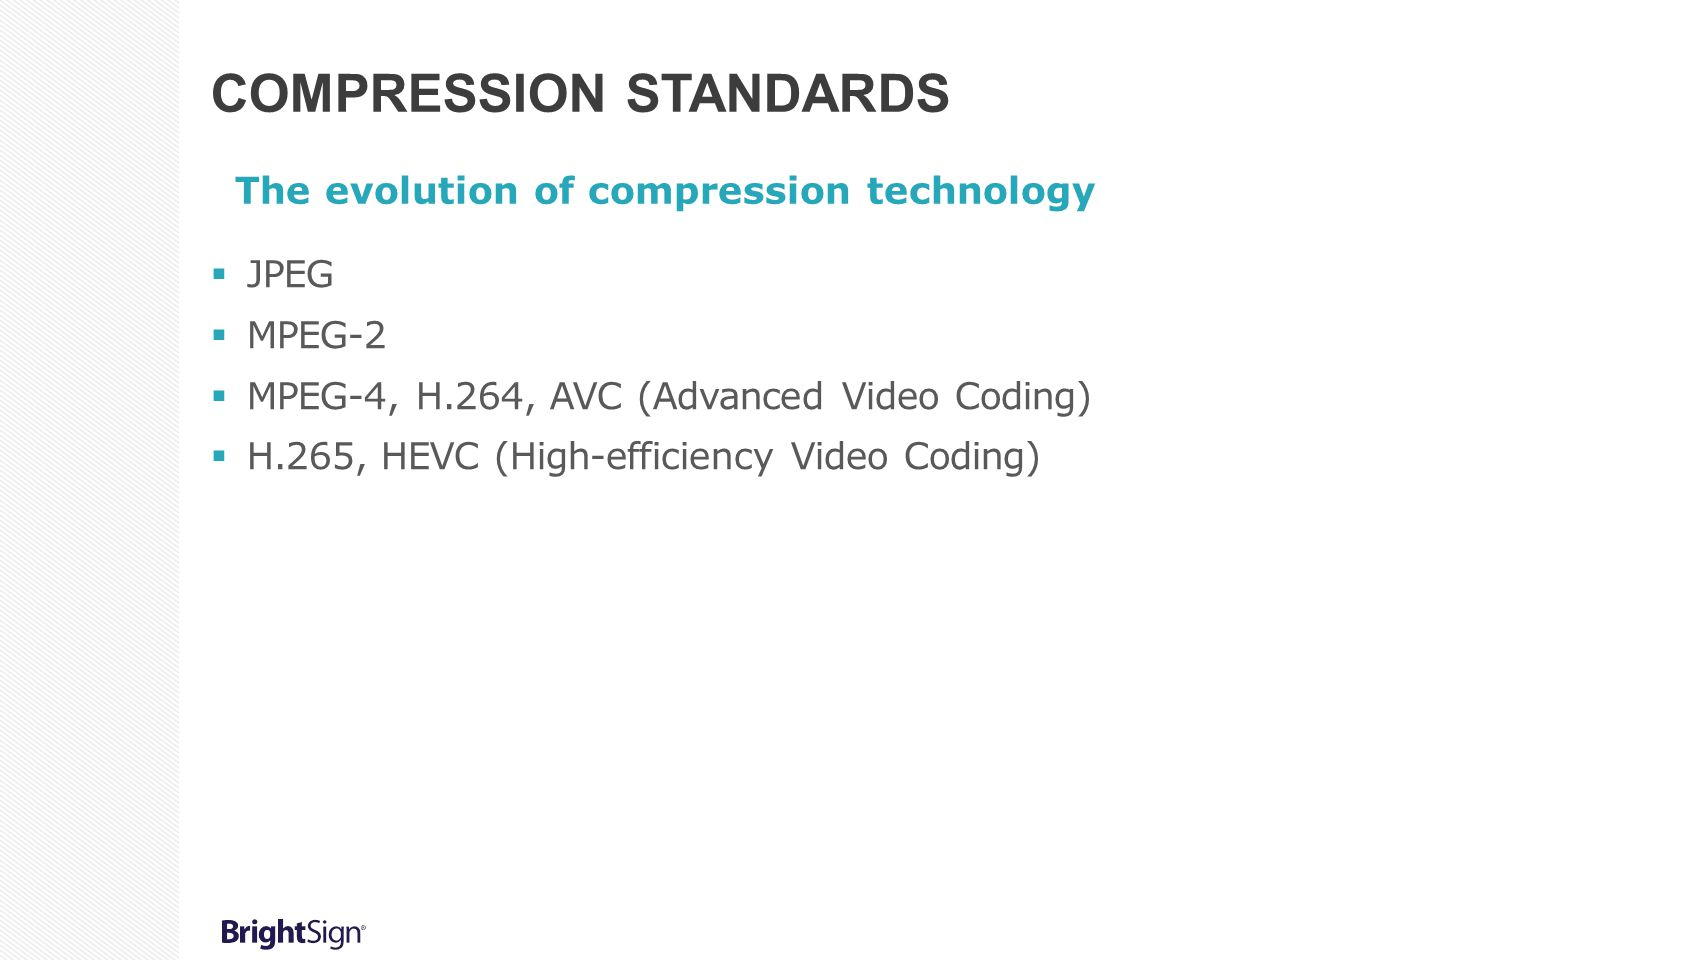 COMPRESSION STANDARDS The evolution of compression technology  JPEG  MPEG-2  MPEG-4, H.264, AVC (Advanced Video Coding)  H.265, HEVC (High-efficiency Video Coding)